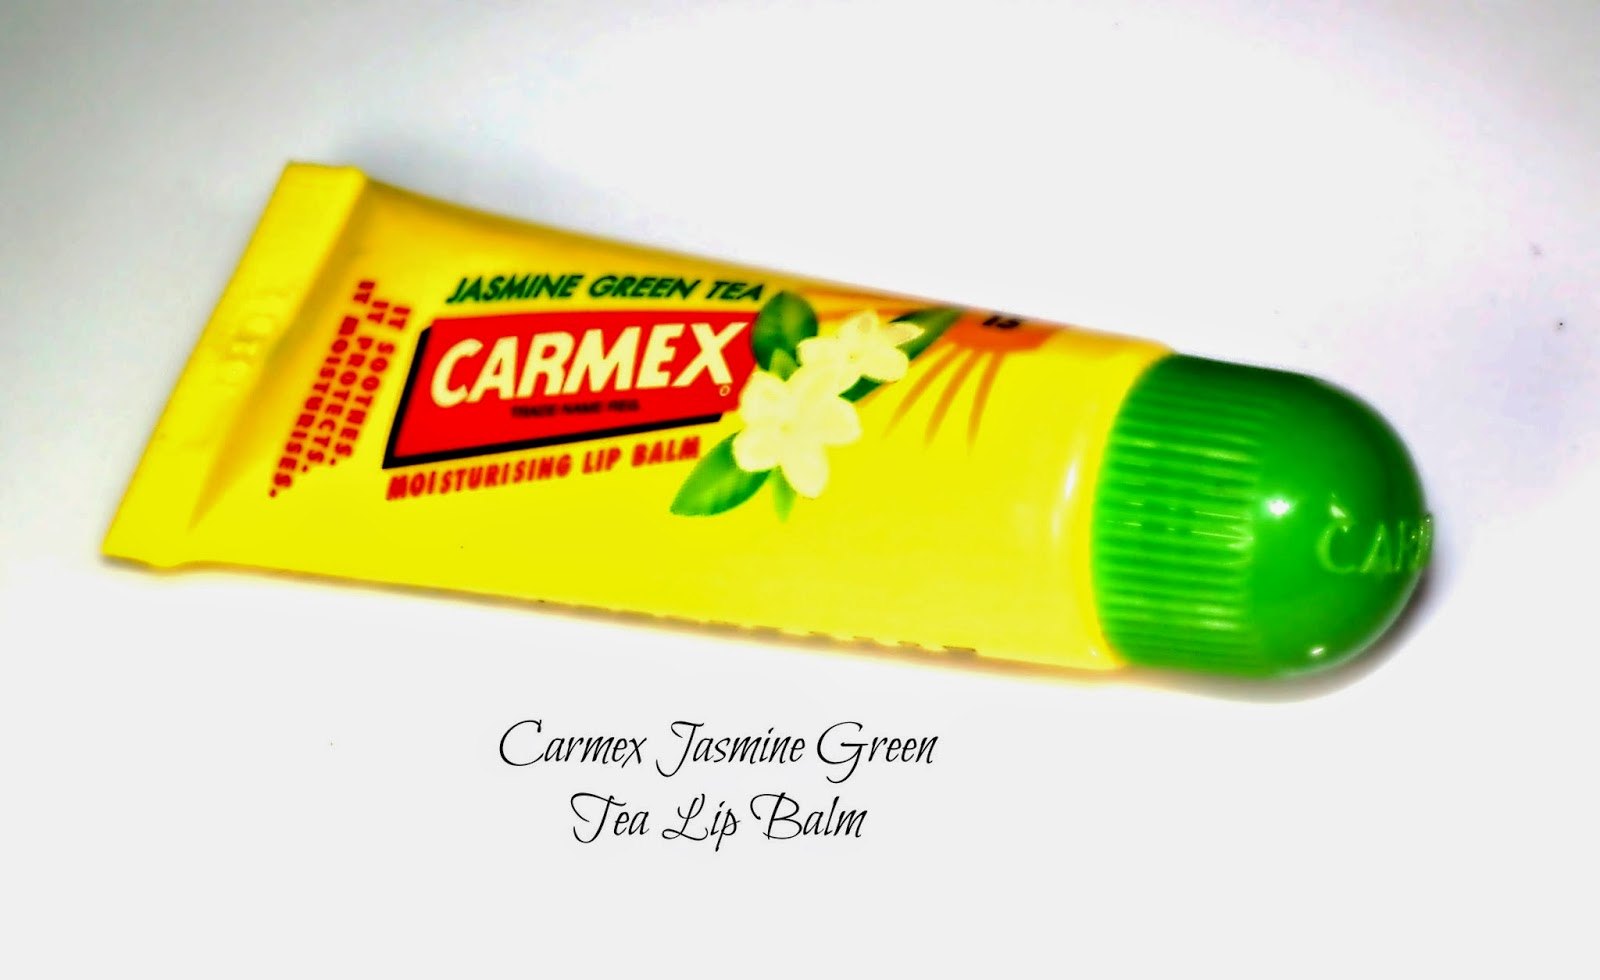 Carmex Jasmine Green Tea Lip Balm Reviews